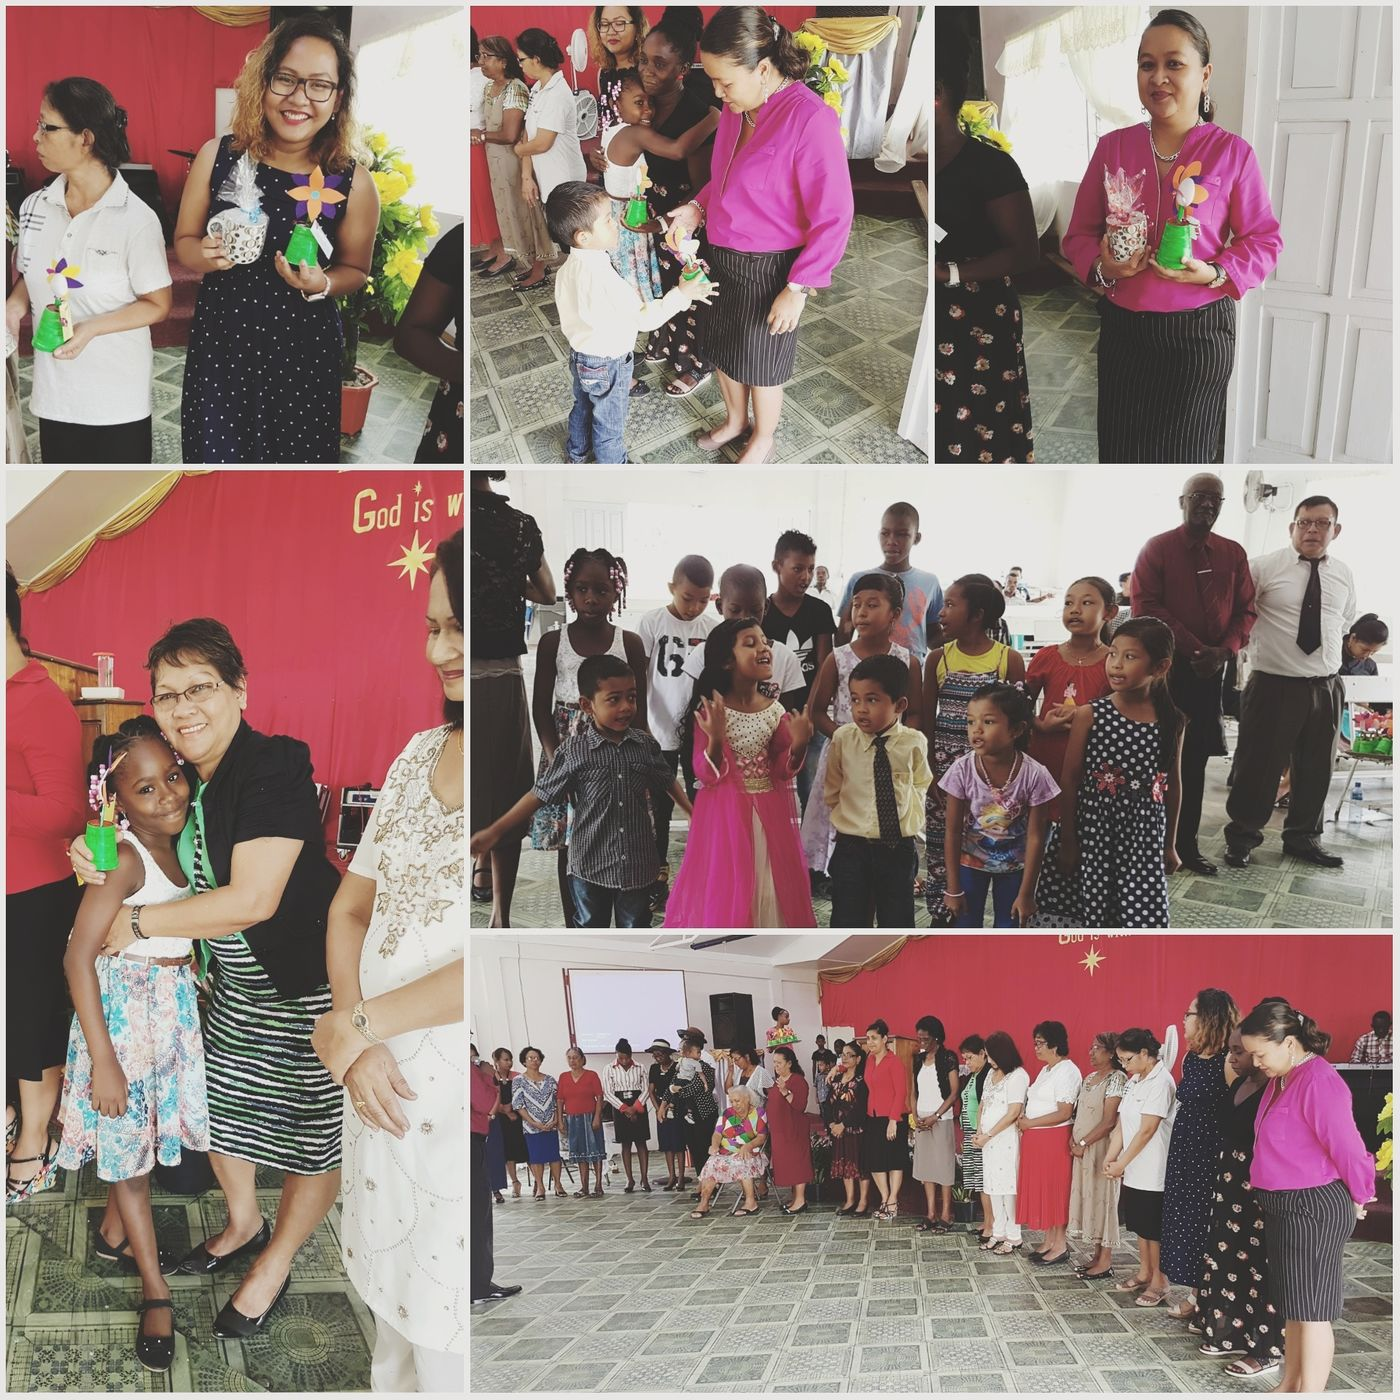 Large Group Of People Happiness Mothers Mother's Day Mother'sDay2017 Beautiful People Mother's Day Celebration People Adult Photograph Latergram Latepost Memories Made  Fun Thankful Taking Photos ❤ Happy Mothers Day Happy Mother's Day To My Beautiful Mother! Cheerful At Church